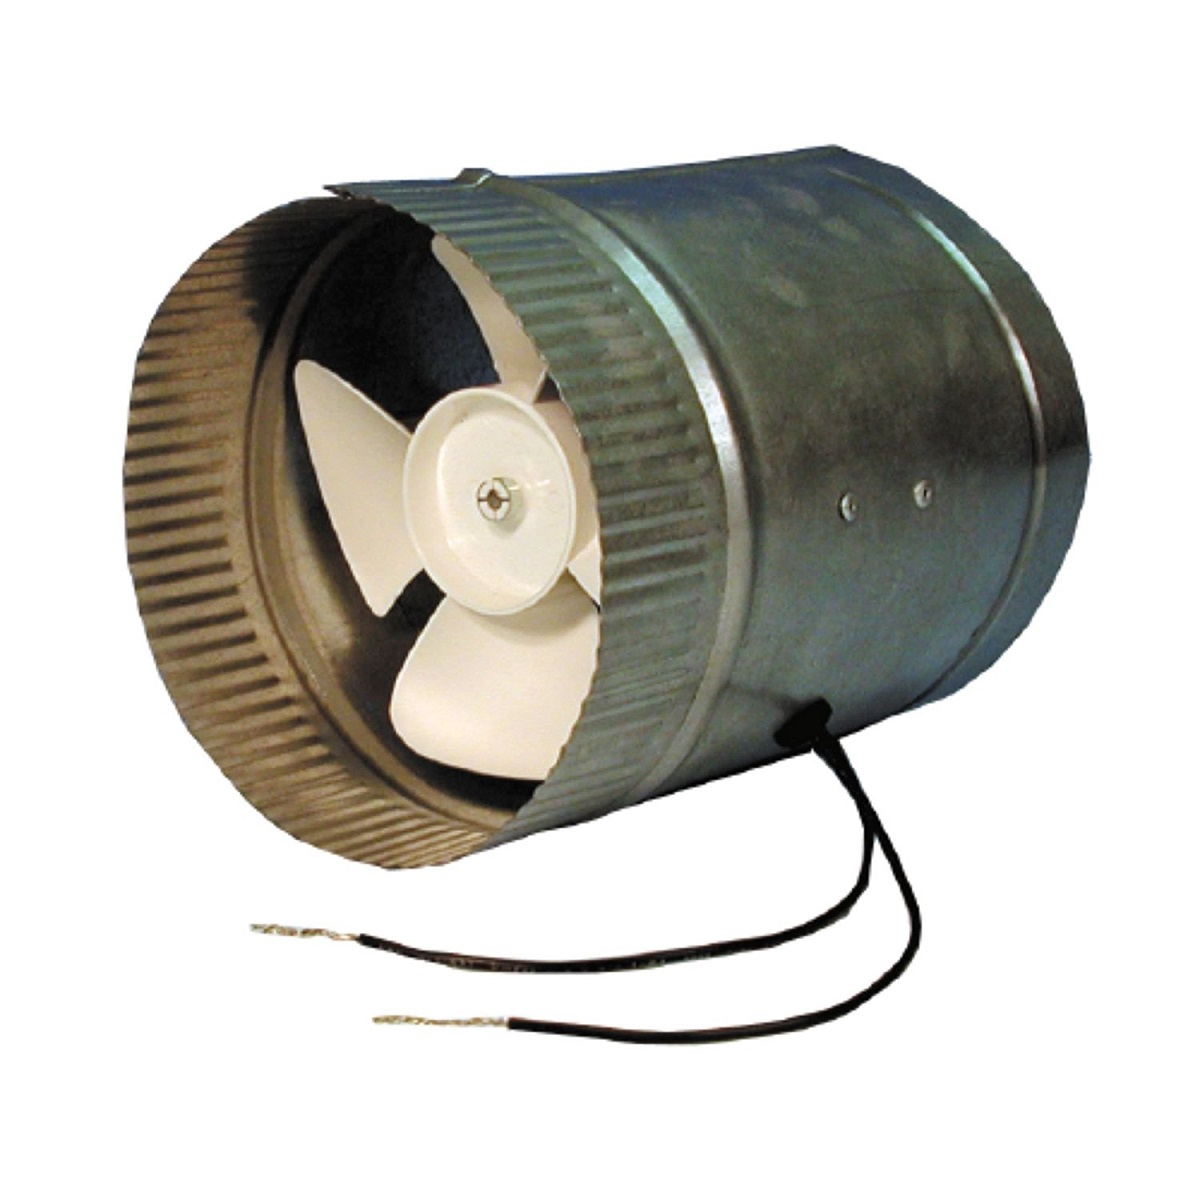 Square Duct Booster Fan : Te supco furnace duct booster vac hz